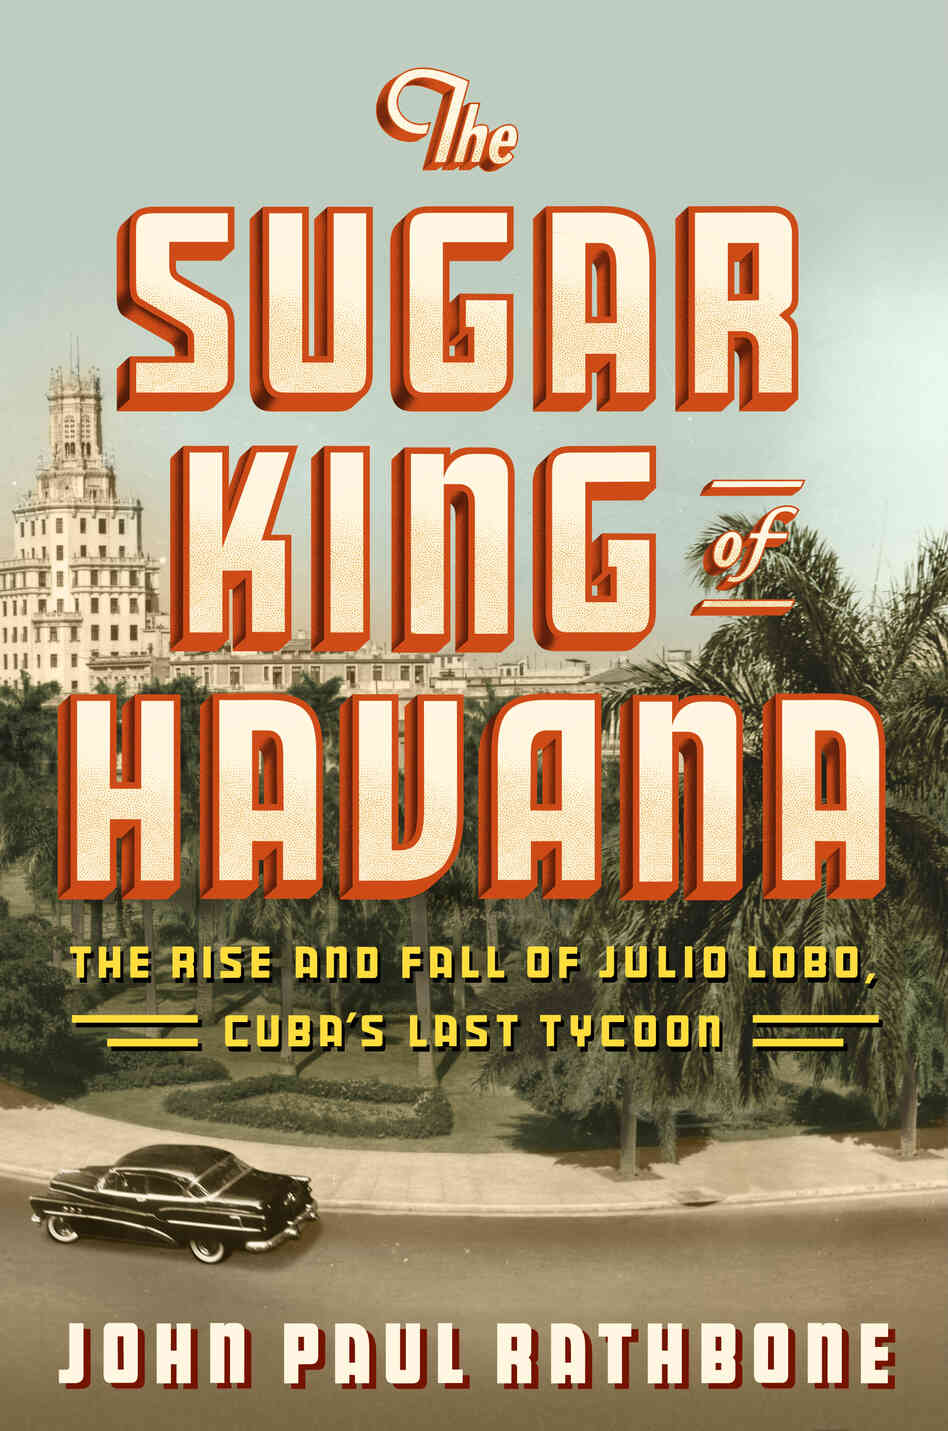 Book cover for 'The Sugar King of Havana'